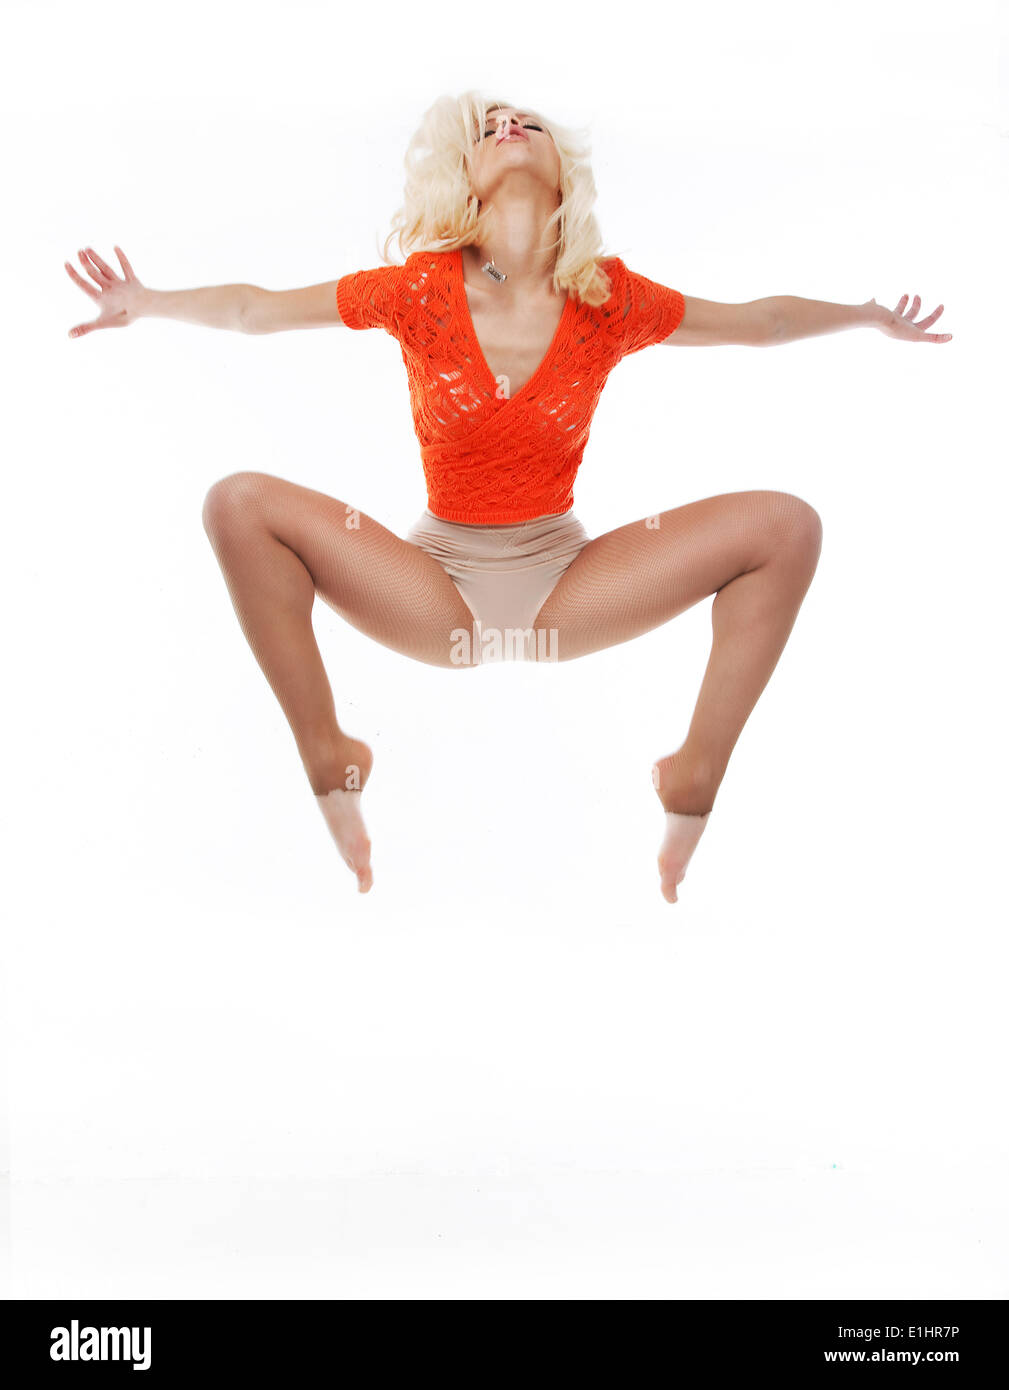 Sporty young fit woman jumping isolated on white background - Stock Image